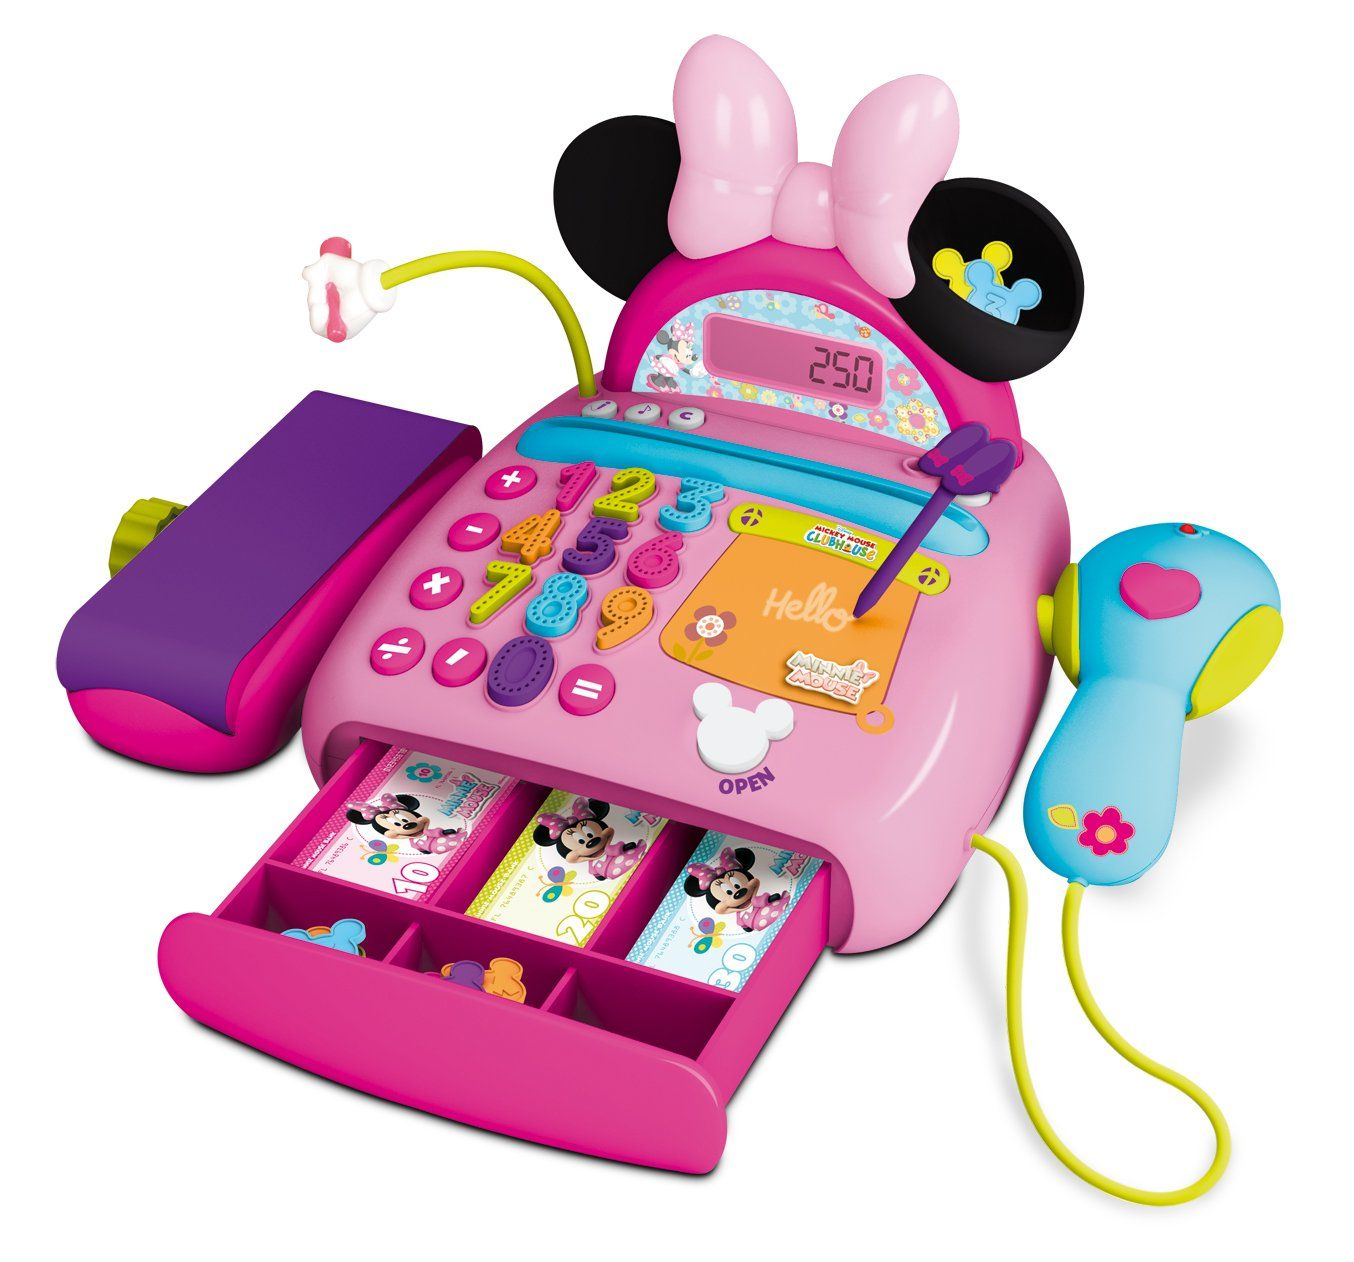 Giochi Mickey Mouse Amazon Imc Minnie Mouse Cash Register Toys And Games